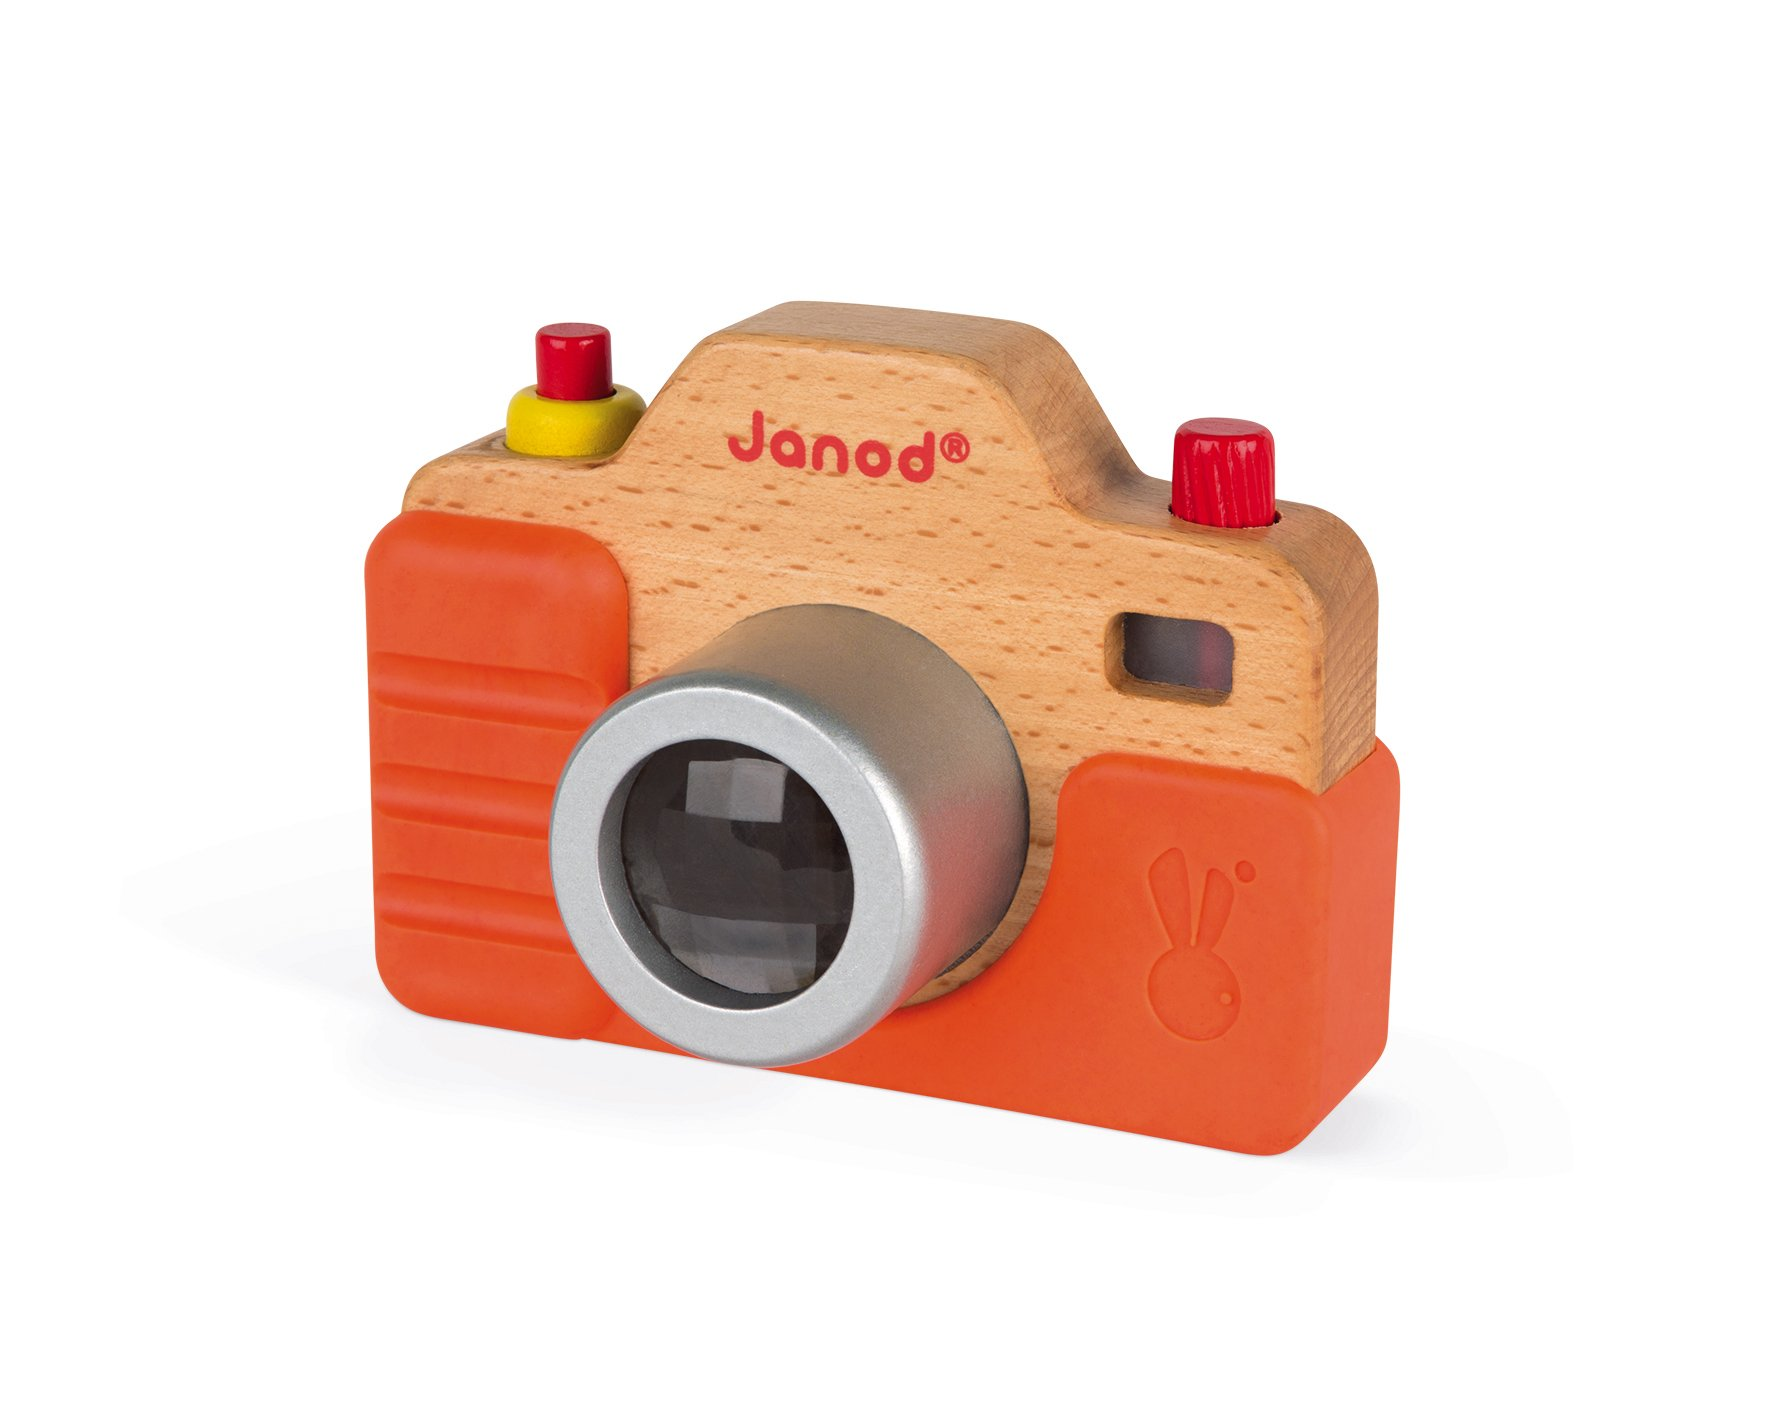 Janod Wooden Interactive Sound Camera Toy by Janod (Image #4)